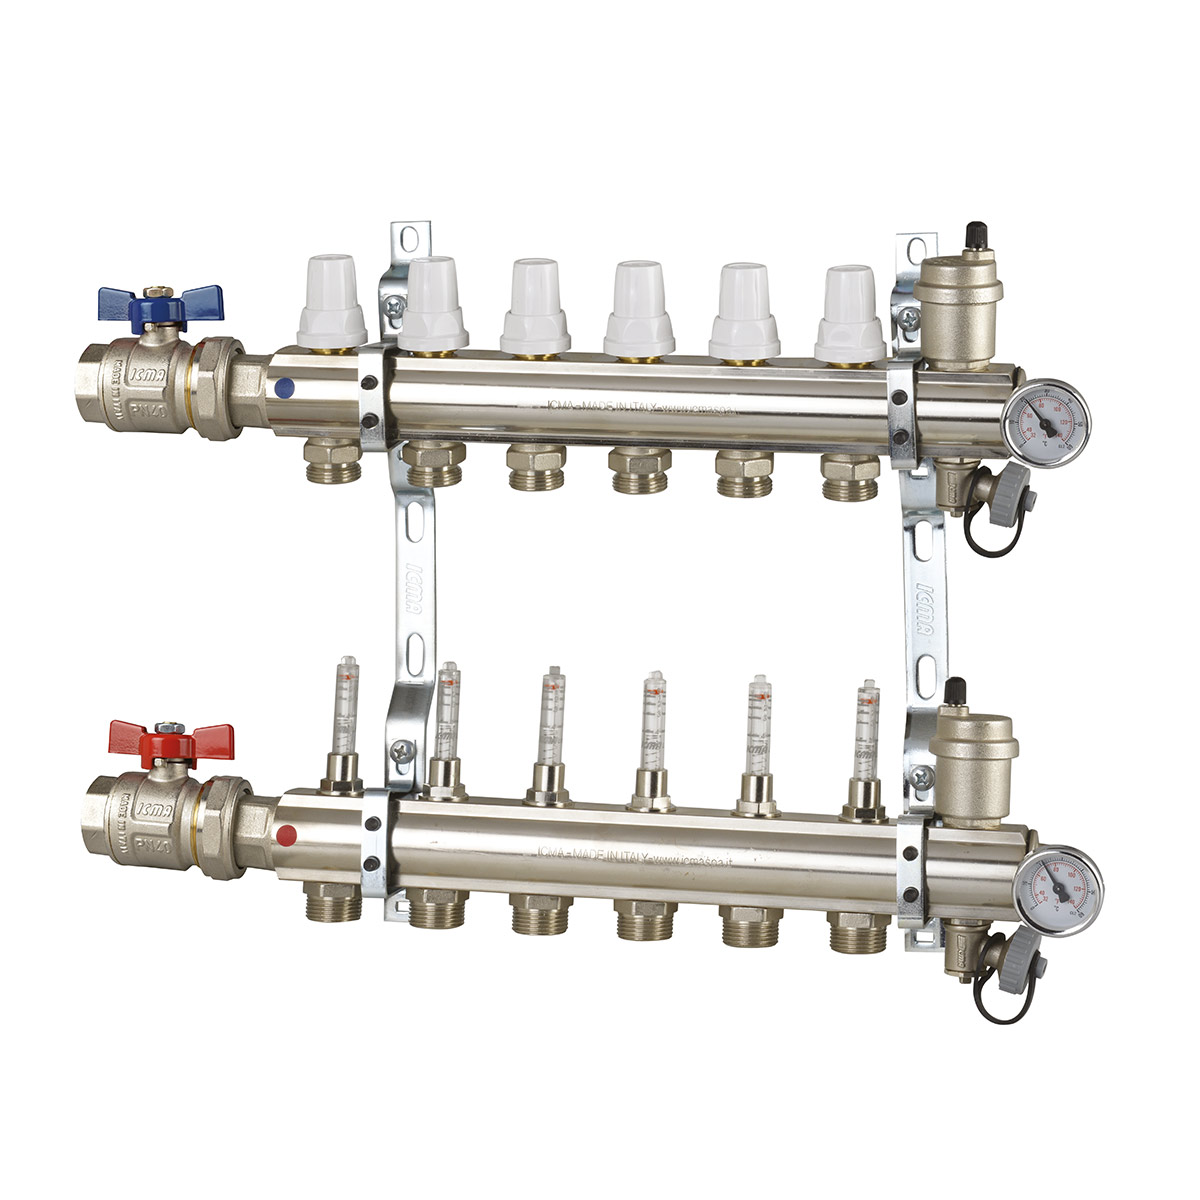 Manifolds unit with memory flowmeters and valves with thermostatic option